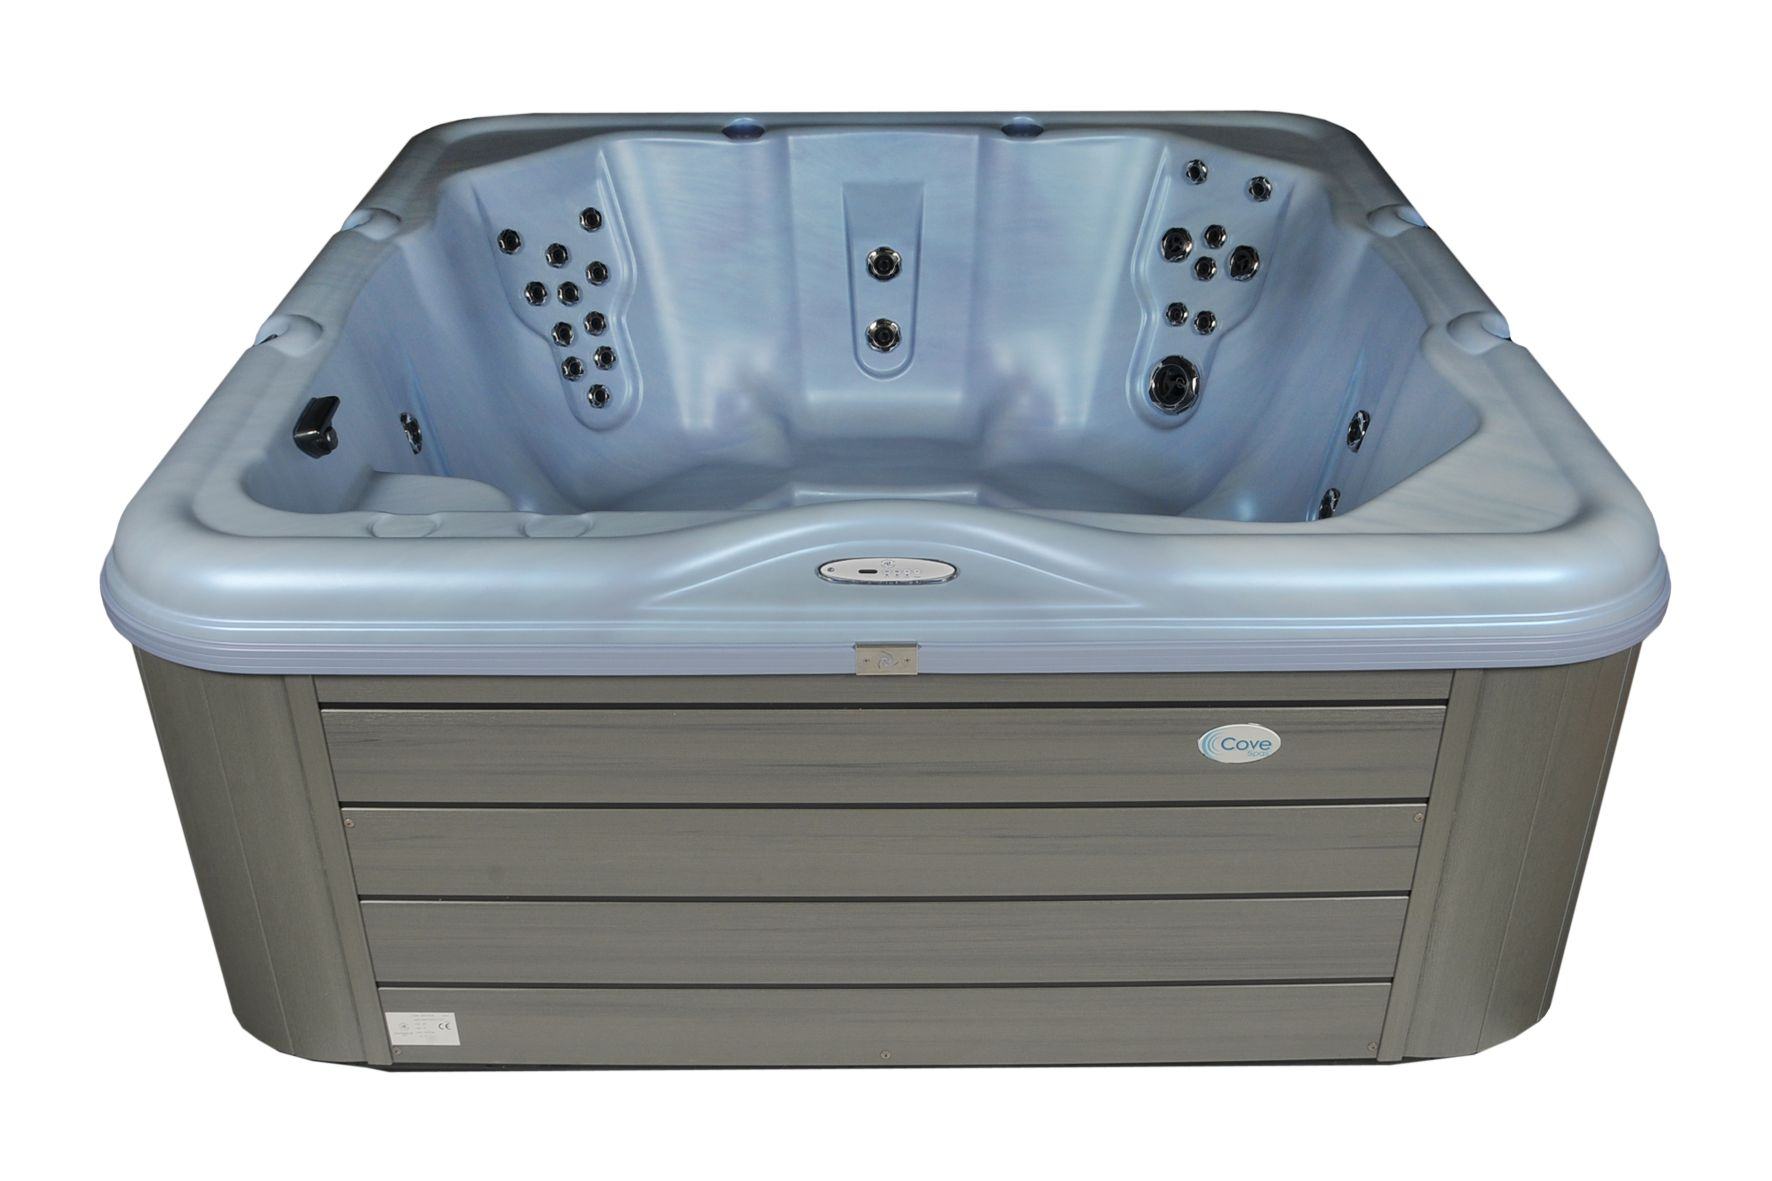 Luxury holiday home hot tub